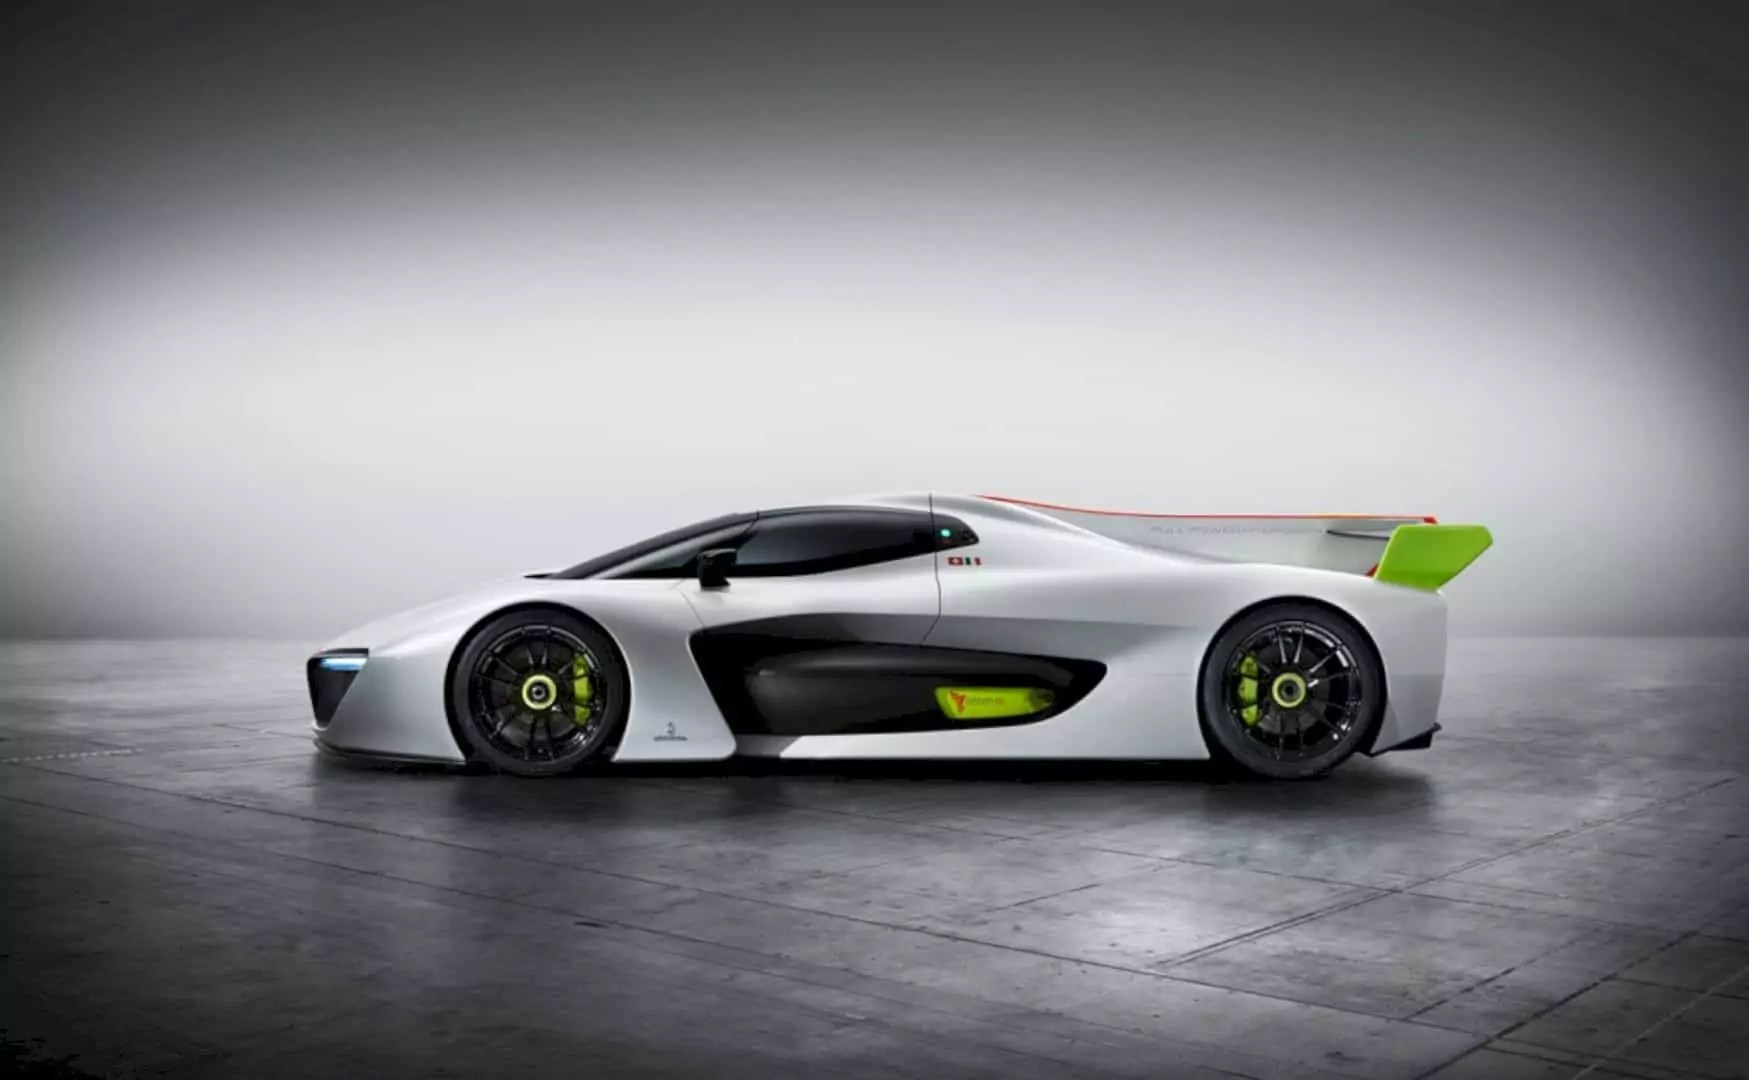 Pininfarina H2 Speed: Energy of Nature in The Frame of High Performance